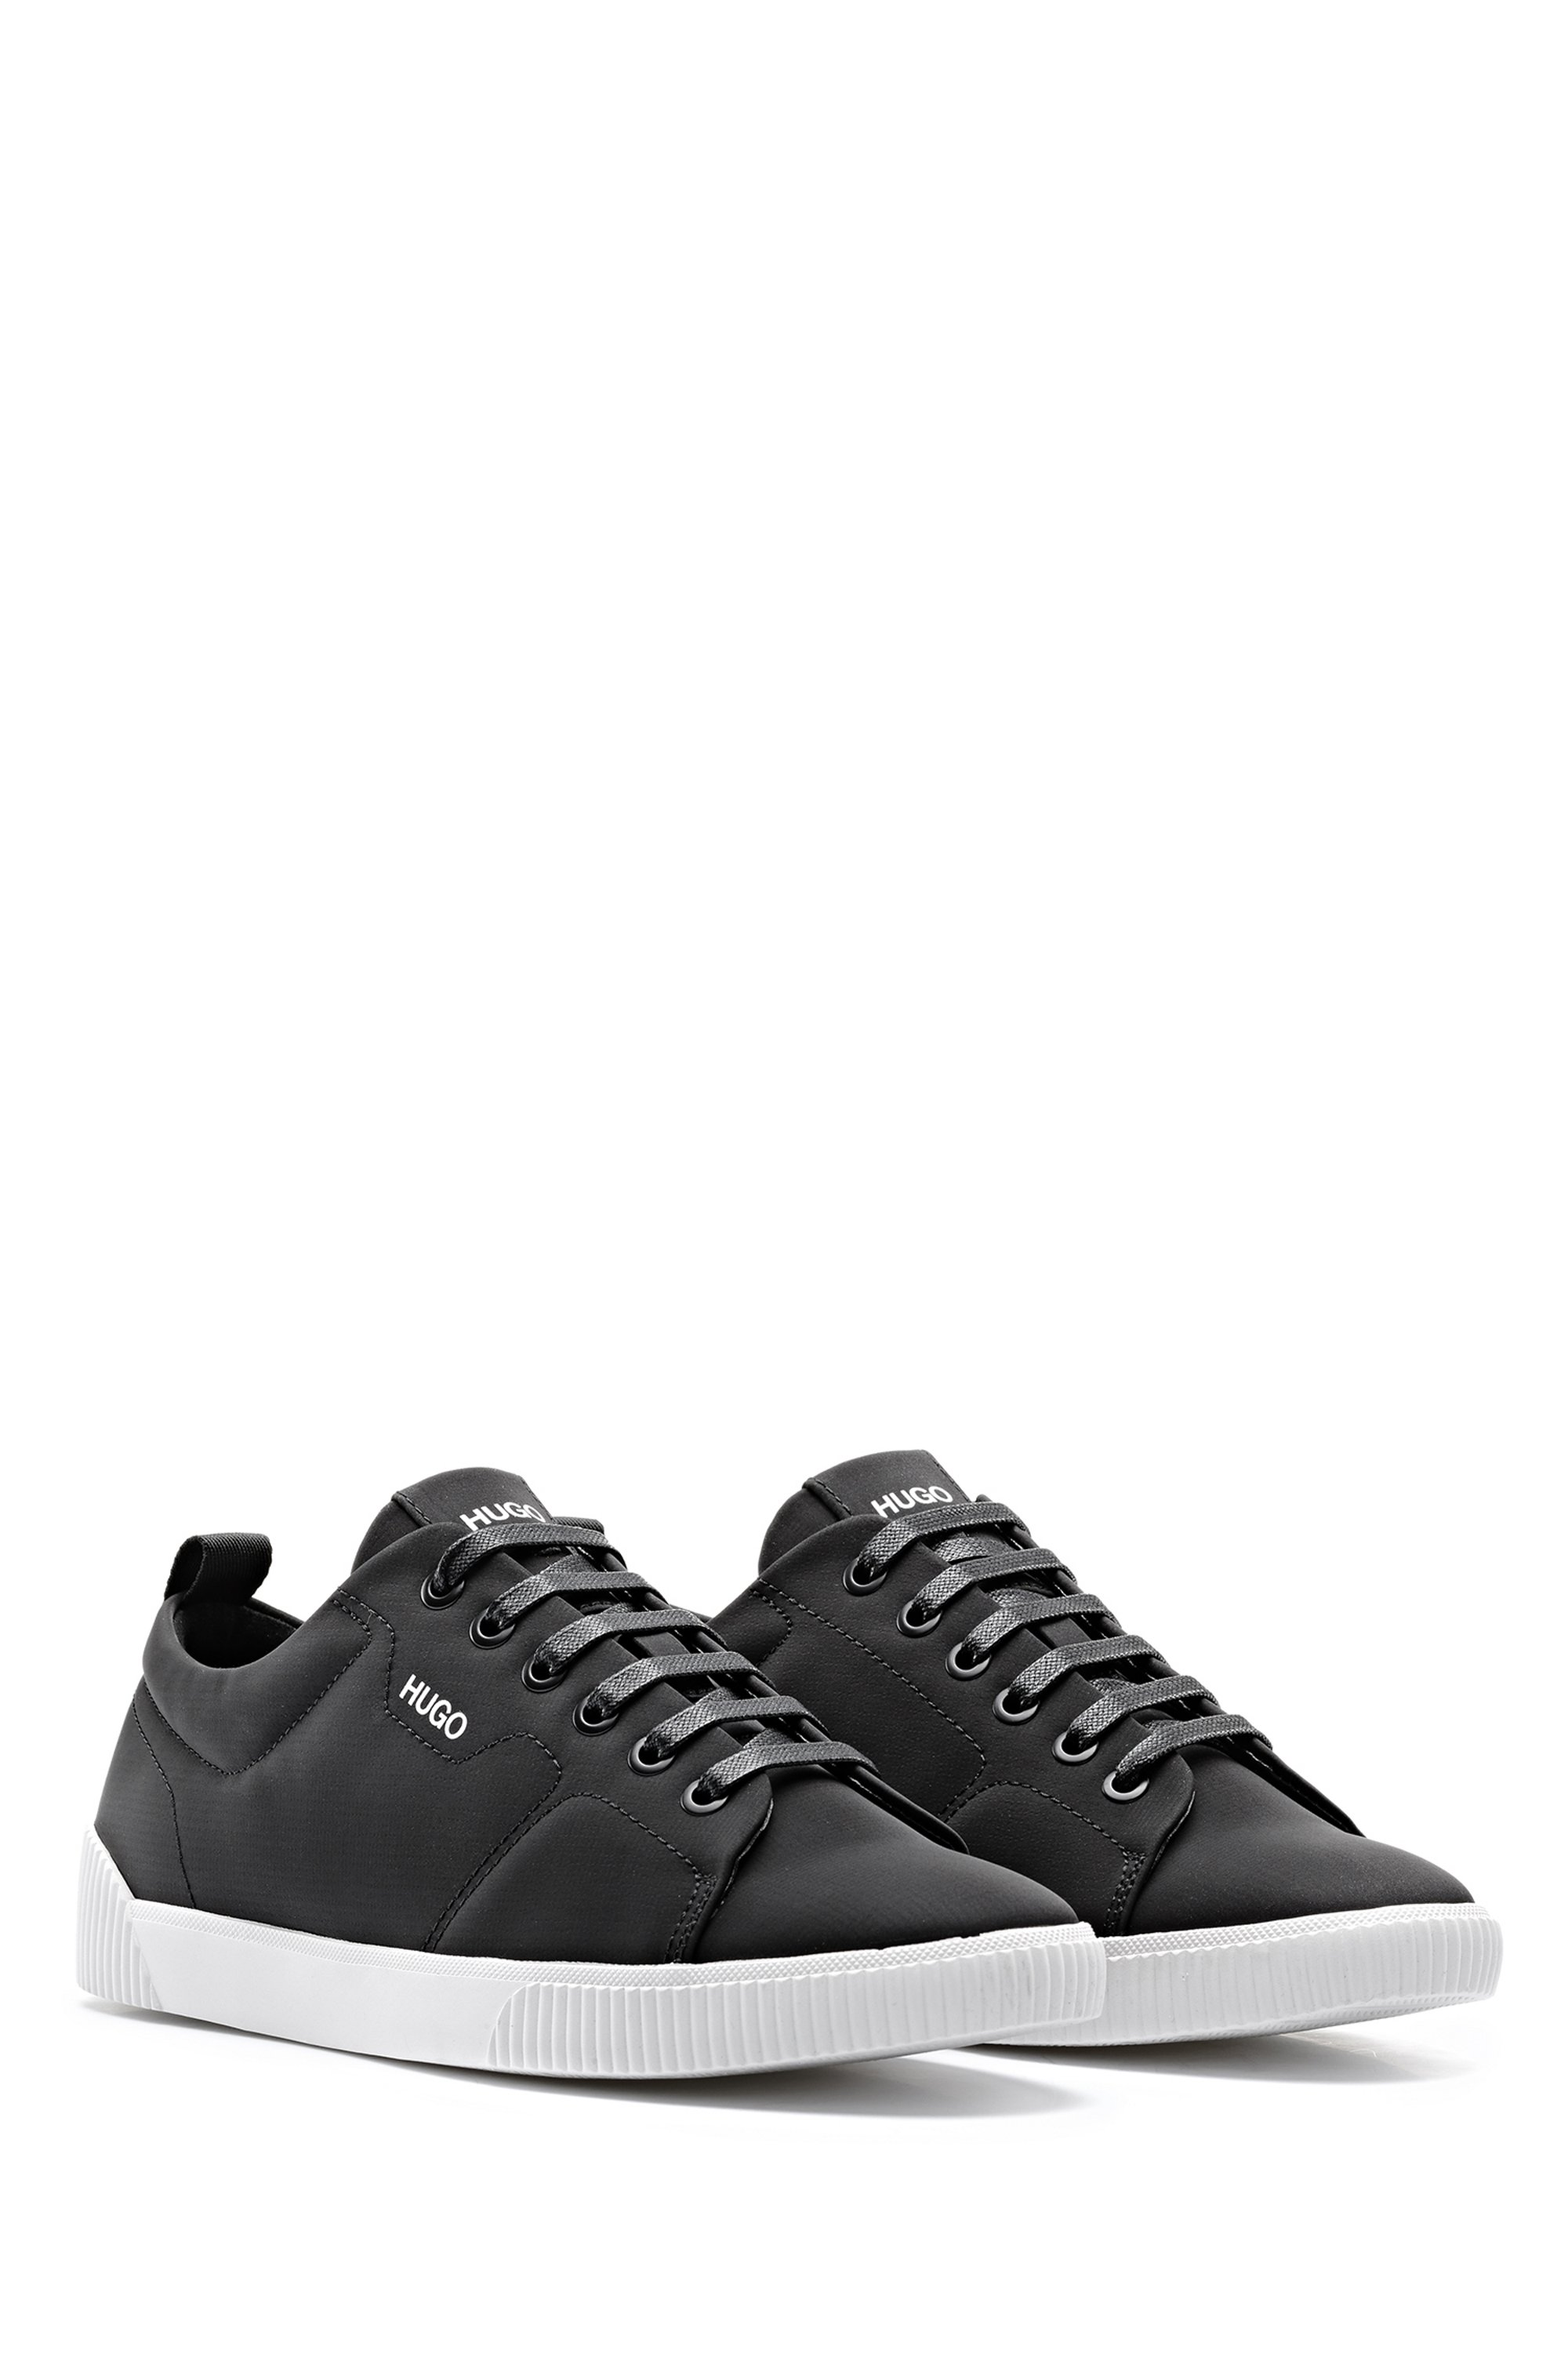 Tennis-style trainers in matte fabric with logo details